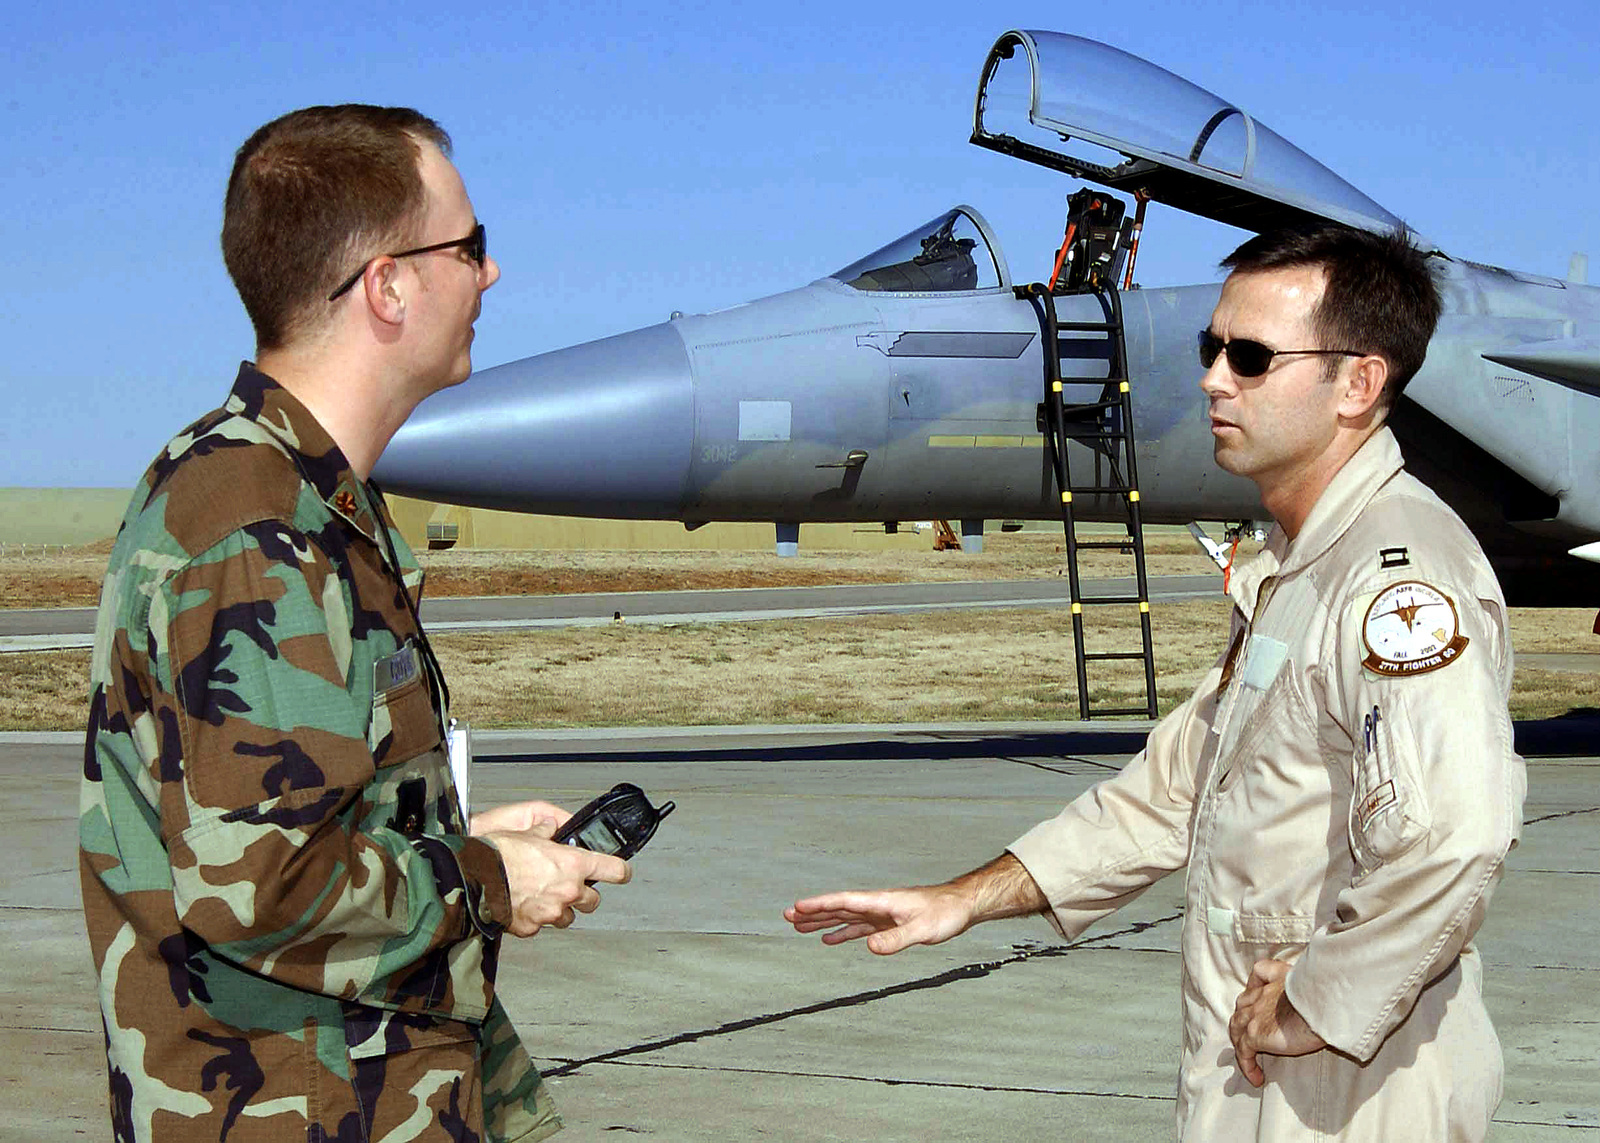 US Air Force (USAF) Major (MAJ) Scott Covode (left), Public Affairs Officer (PAO), talks with USAF Captain (CPT) Patrick Driscoll, F-15C Eagle aircraft Pilot assigned to the 25th Expeditionary Fighter Squadron (EFS), about CPT Driscoll upcoming interview Cable News Network (CNN), on the flight line at Incirlik Air Base (AB), Turkey, while deployed support of Combined Task Force (CTF), Operation NORTHERN WATCH